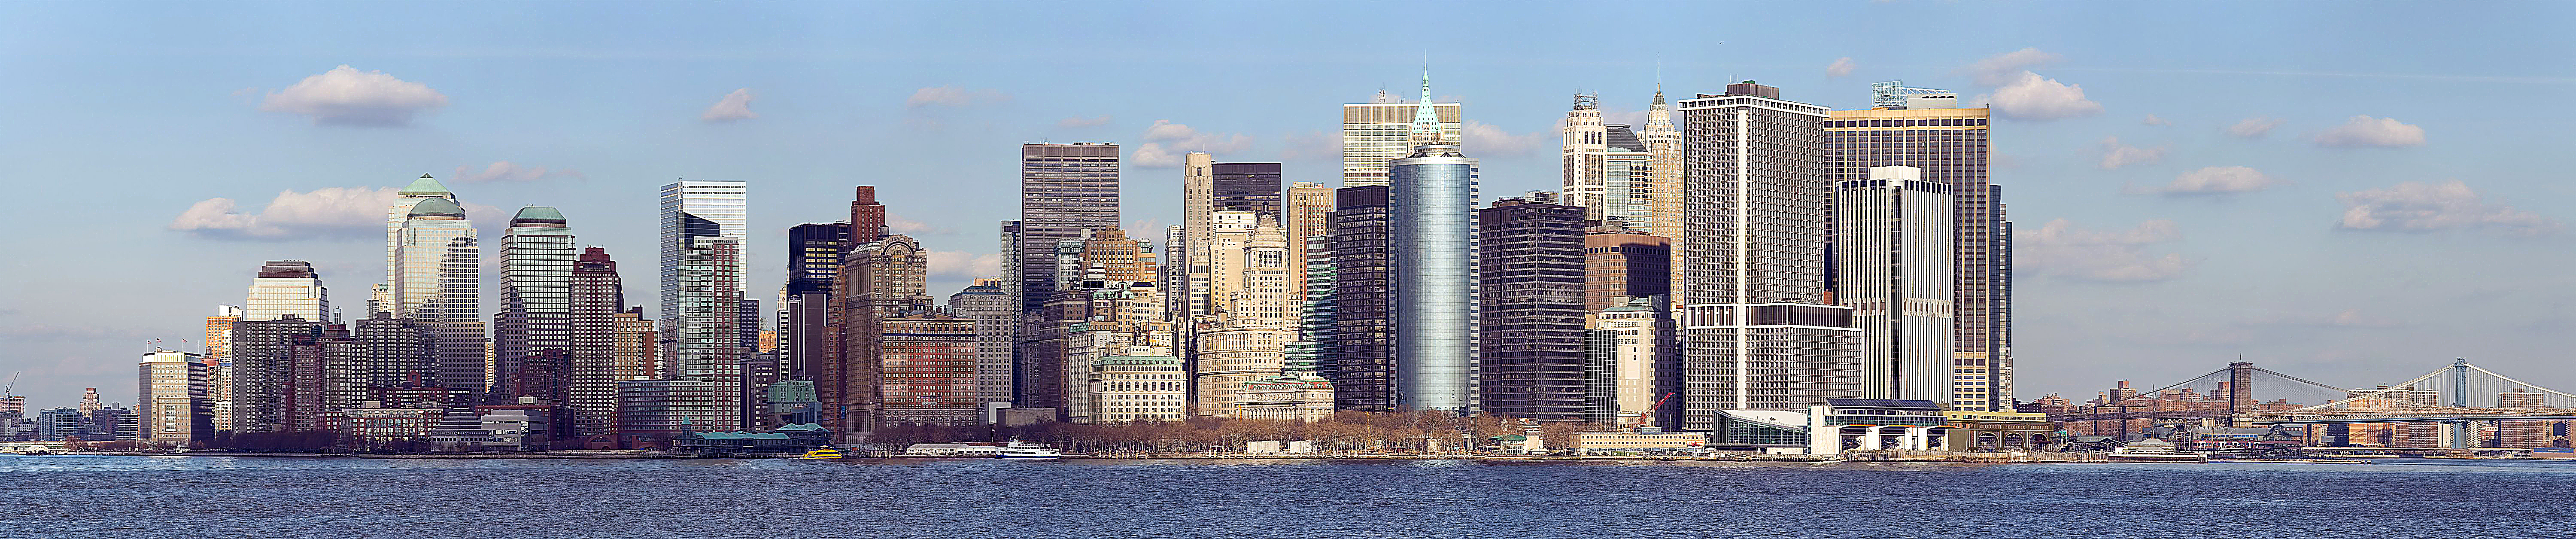 copia-de-new-york